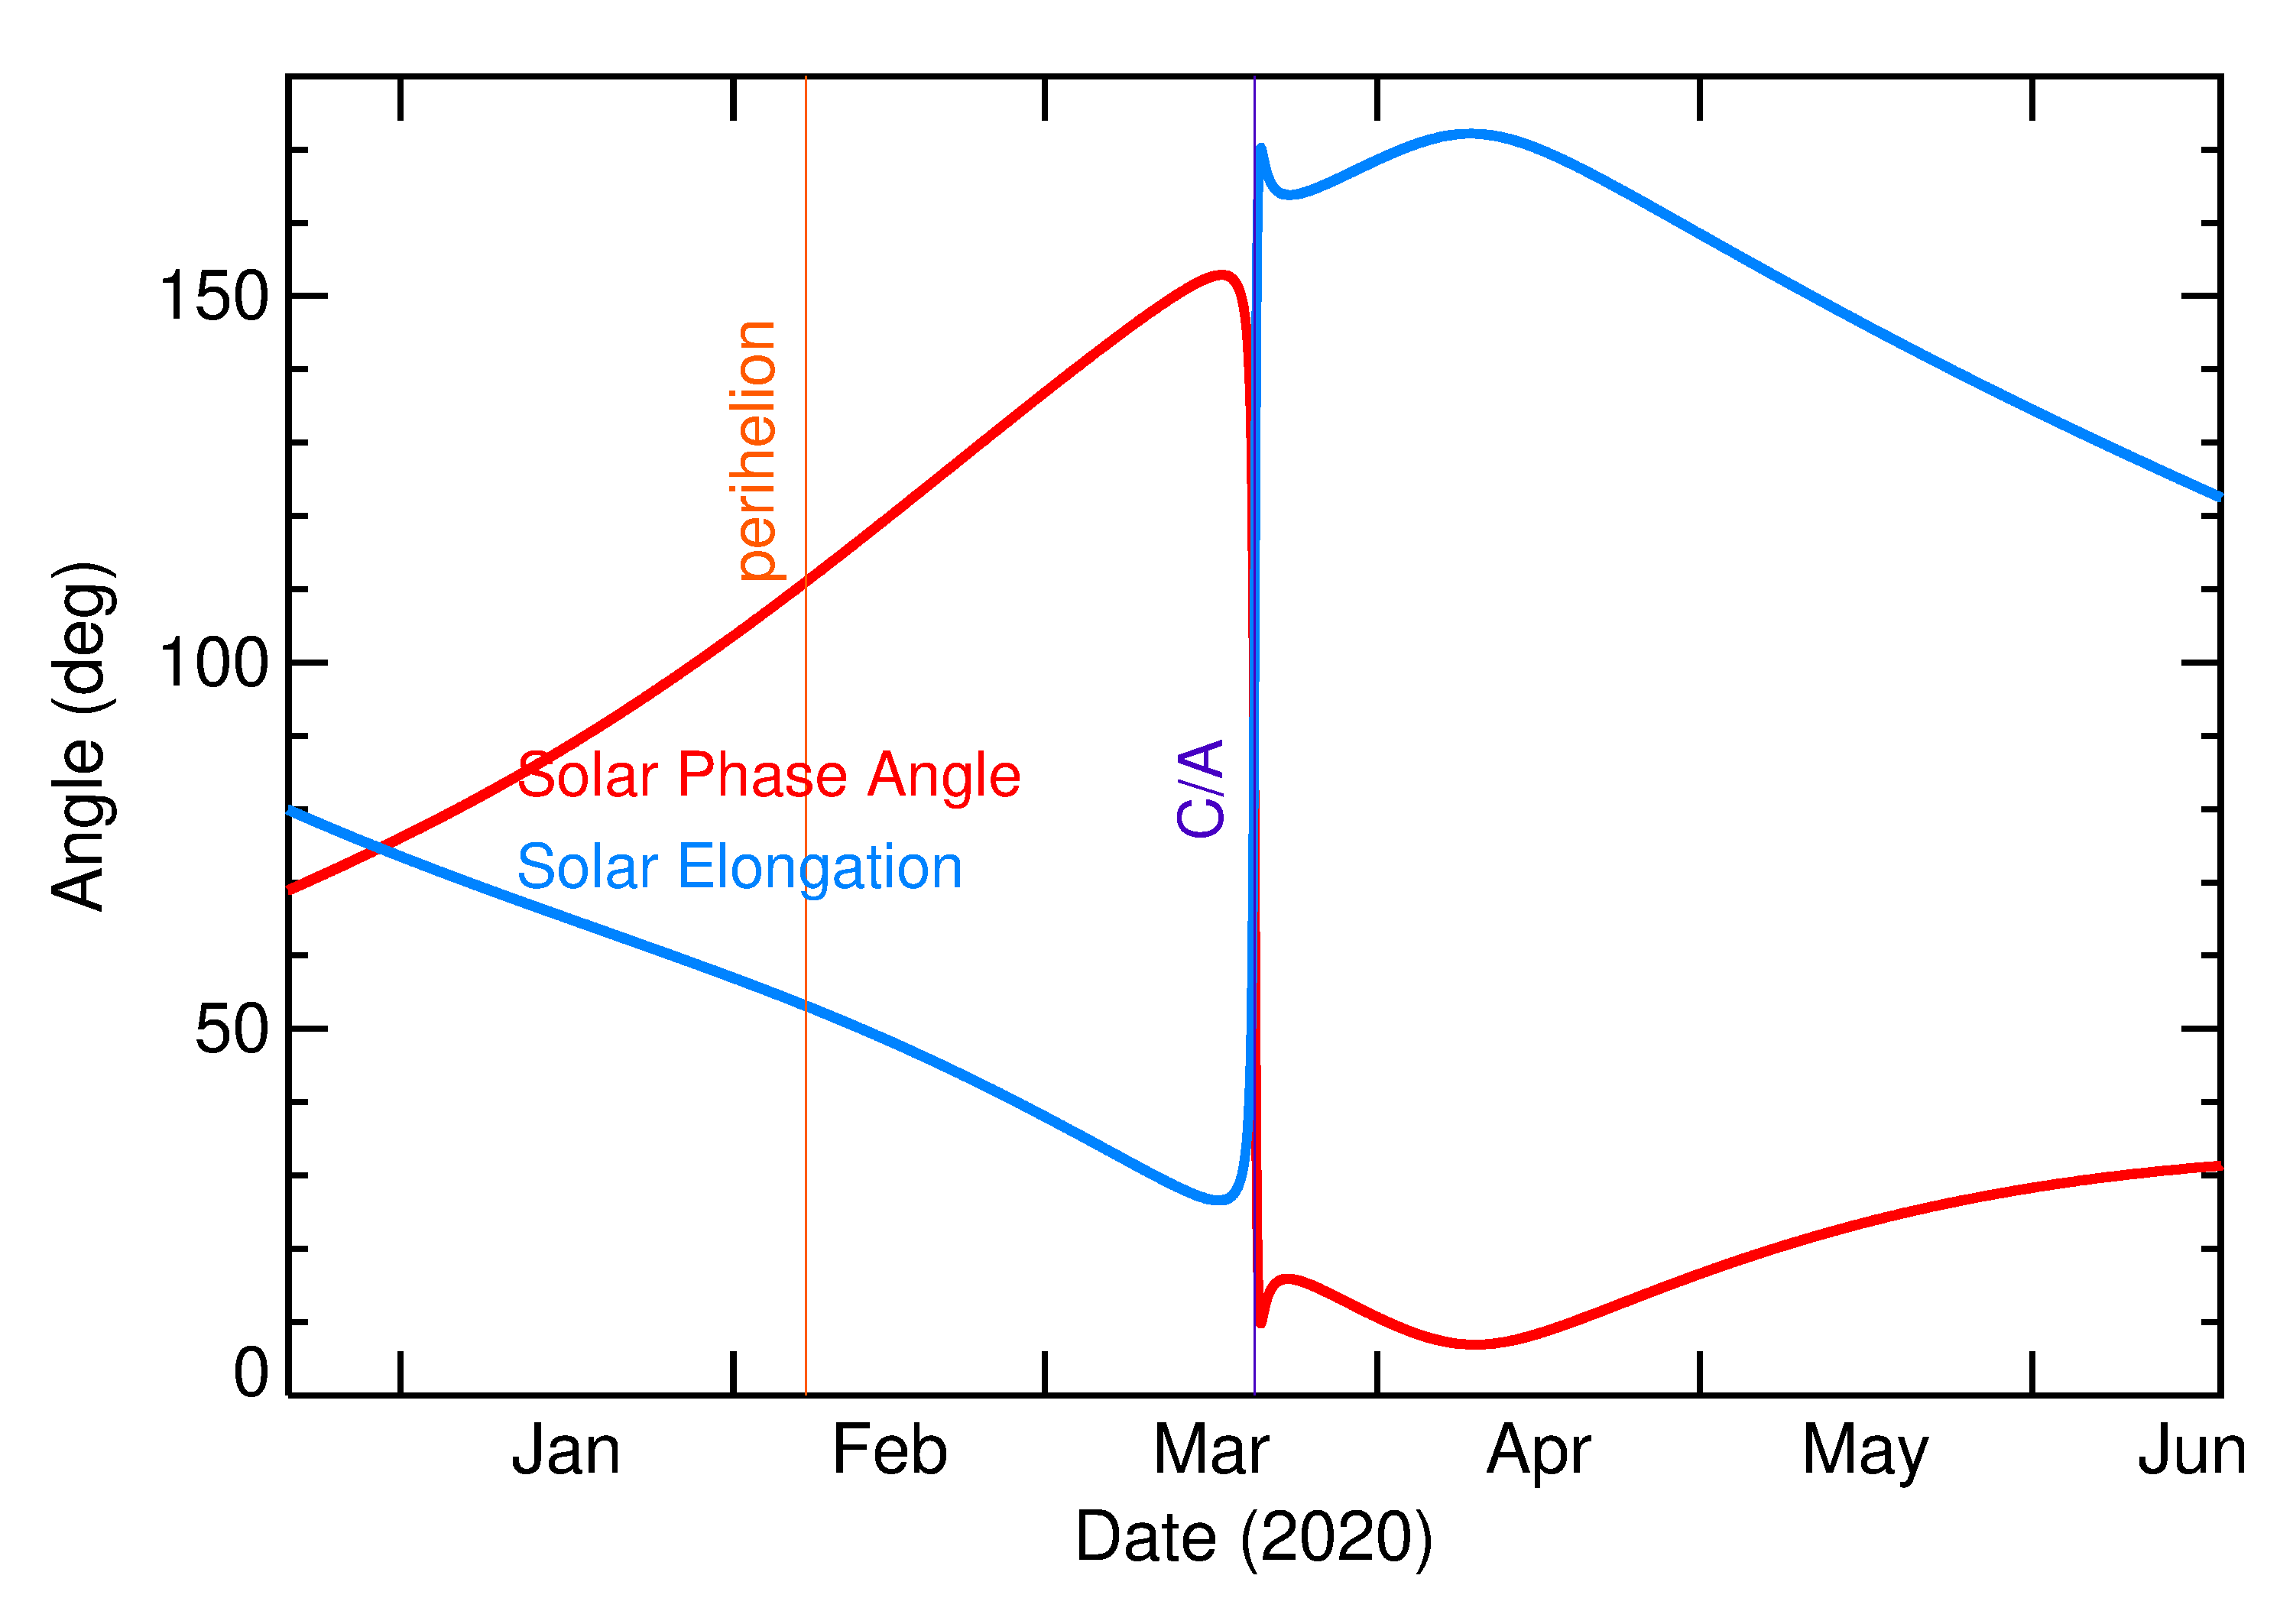 Solar Elongation and Solar Phase Angle of 2020 FG4 in the months around closest approach